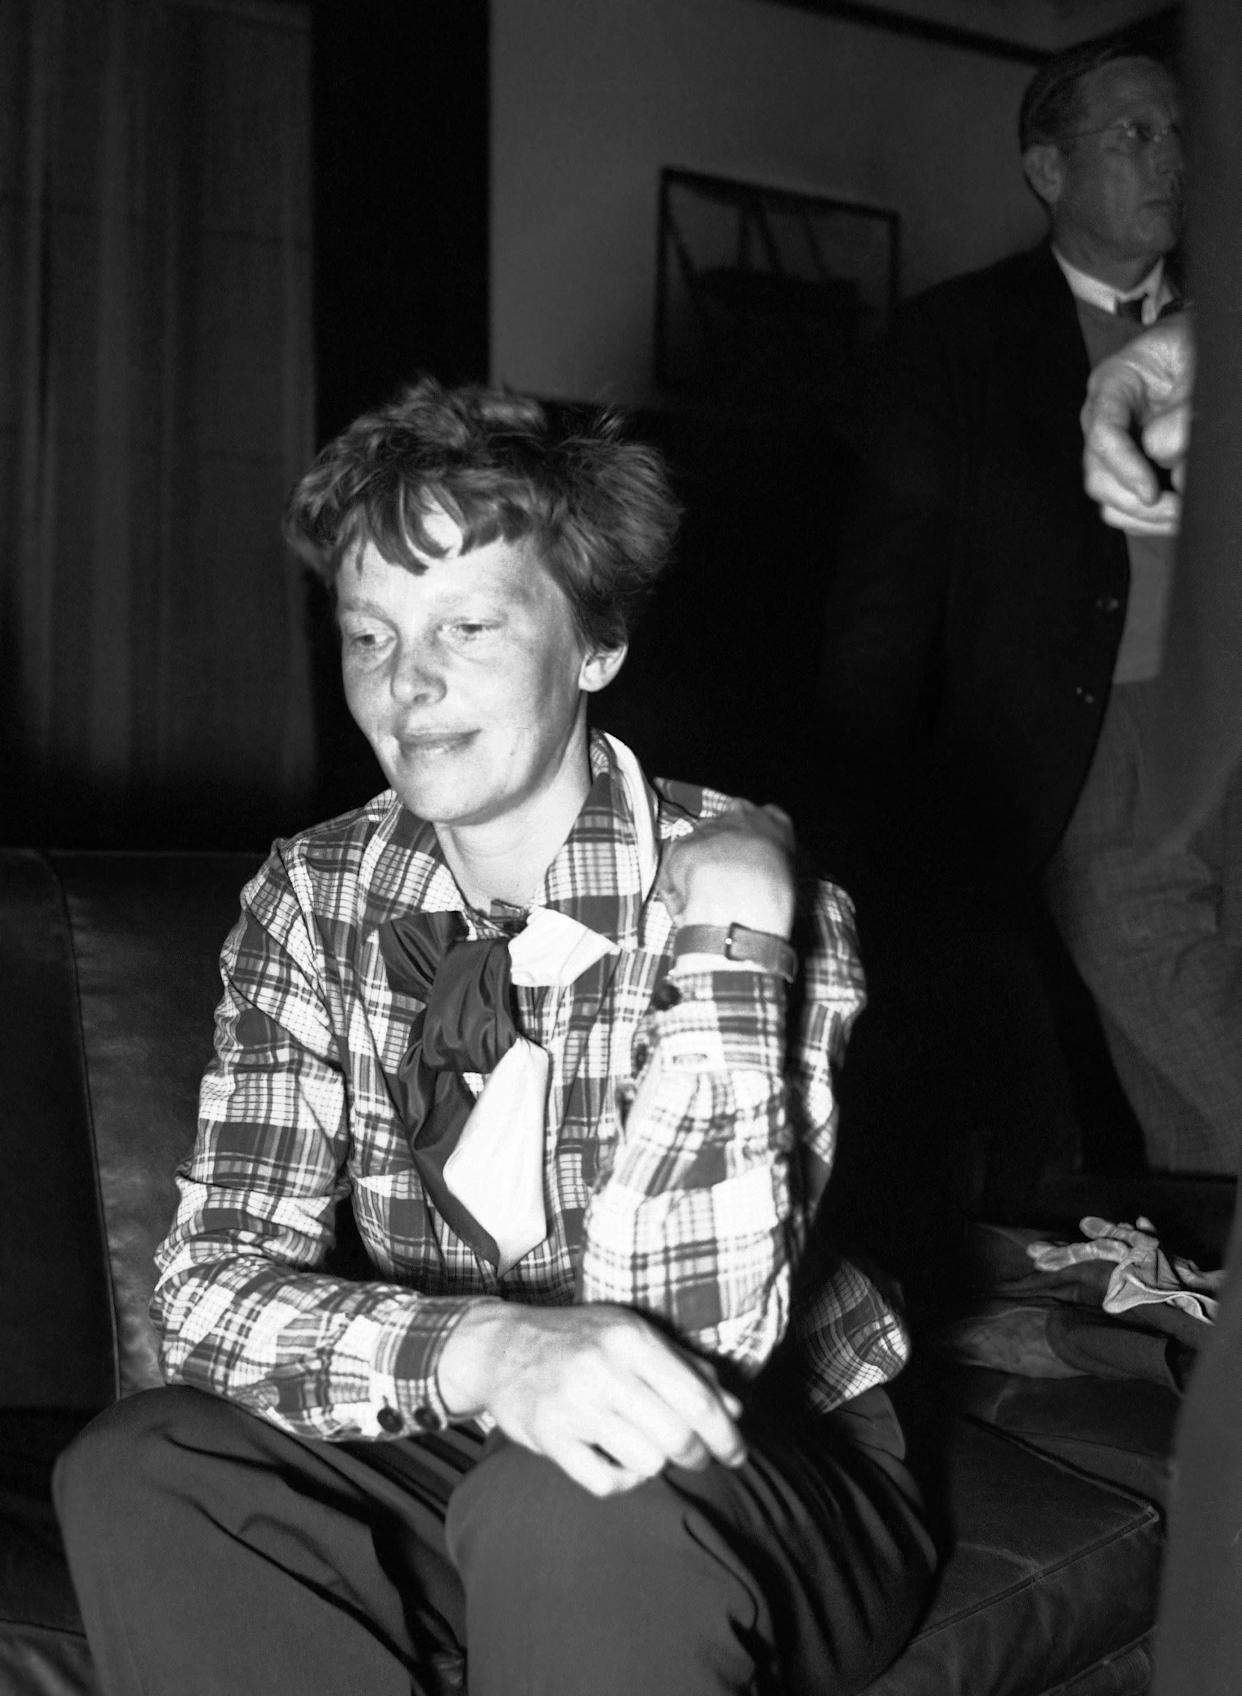 FILE - In this undated photo, Amelia Earhart is shown. A $2.2 million expedition that hoped to find wreckage from famed aviator Amelia Earhart's final flight is on its way back to Hawaii without the dramatic, conclusive plane images searchers were hoping to attain. But the group leading the search, The International Group for Historic Aircraft Recovery, still believes Earhart and her navigator crashed onto a reef off a remote island in the Pacific Ocean 75 years ago this month, its president told The Associated Press on Monday, July 23, 2012. (AP Photo, File)